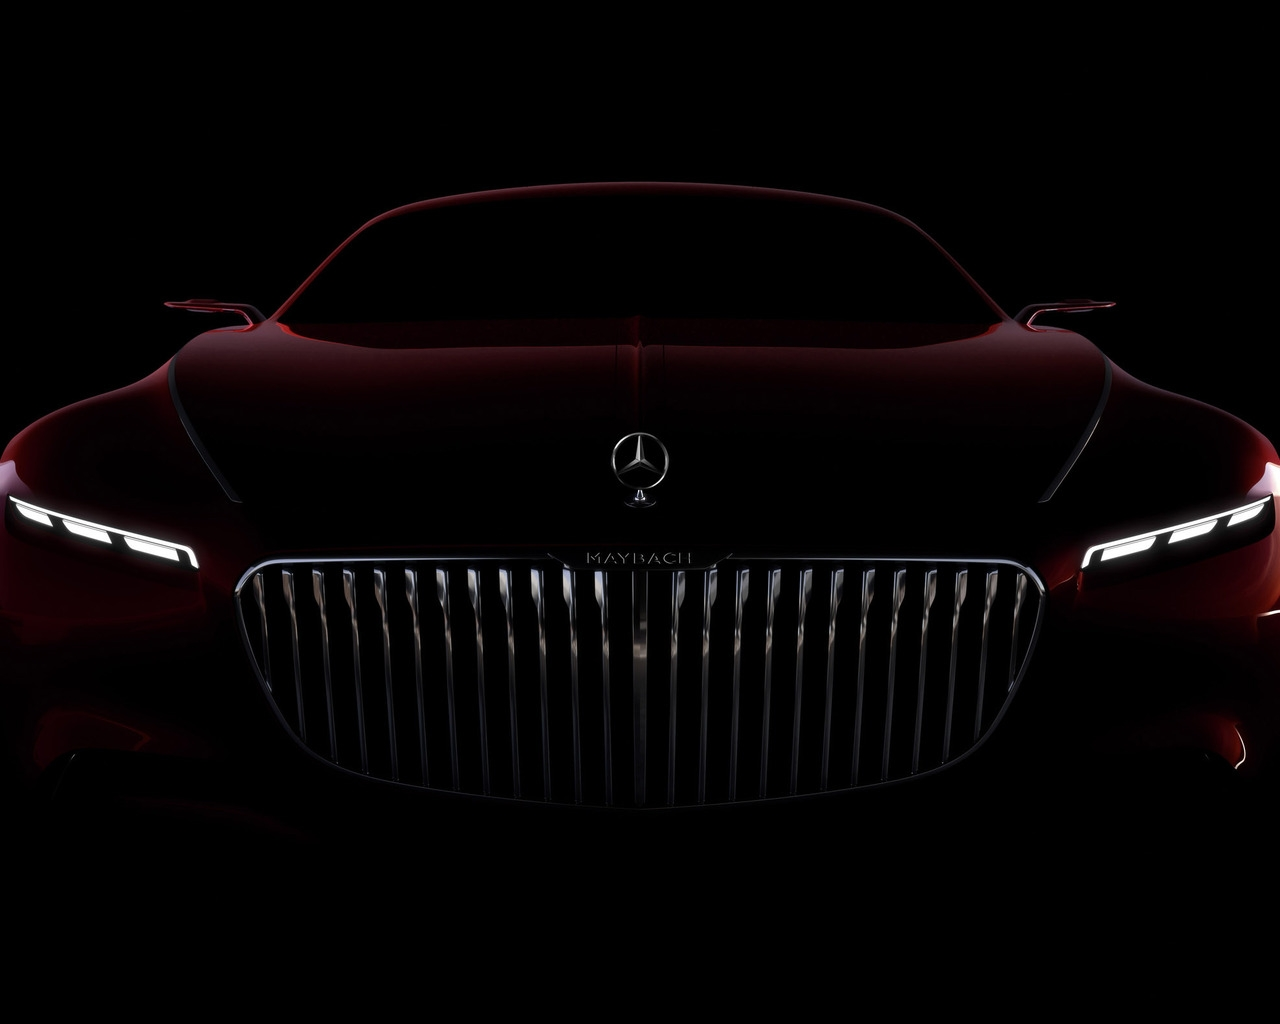 Amazing Vision Mercedes Maybach 6 2016 for 1280 x 1024 resolution